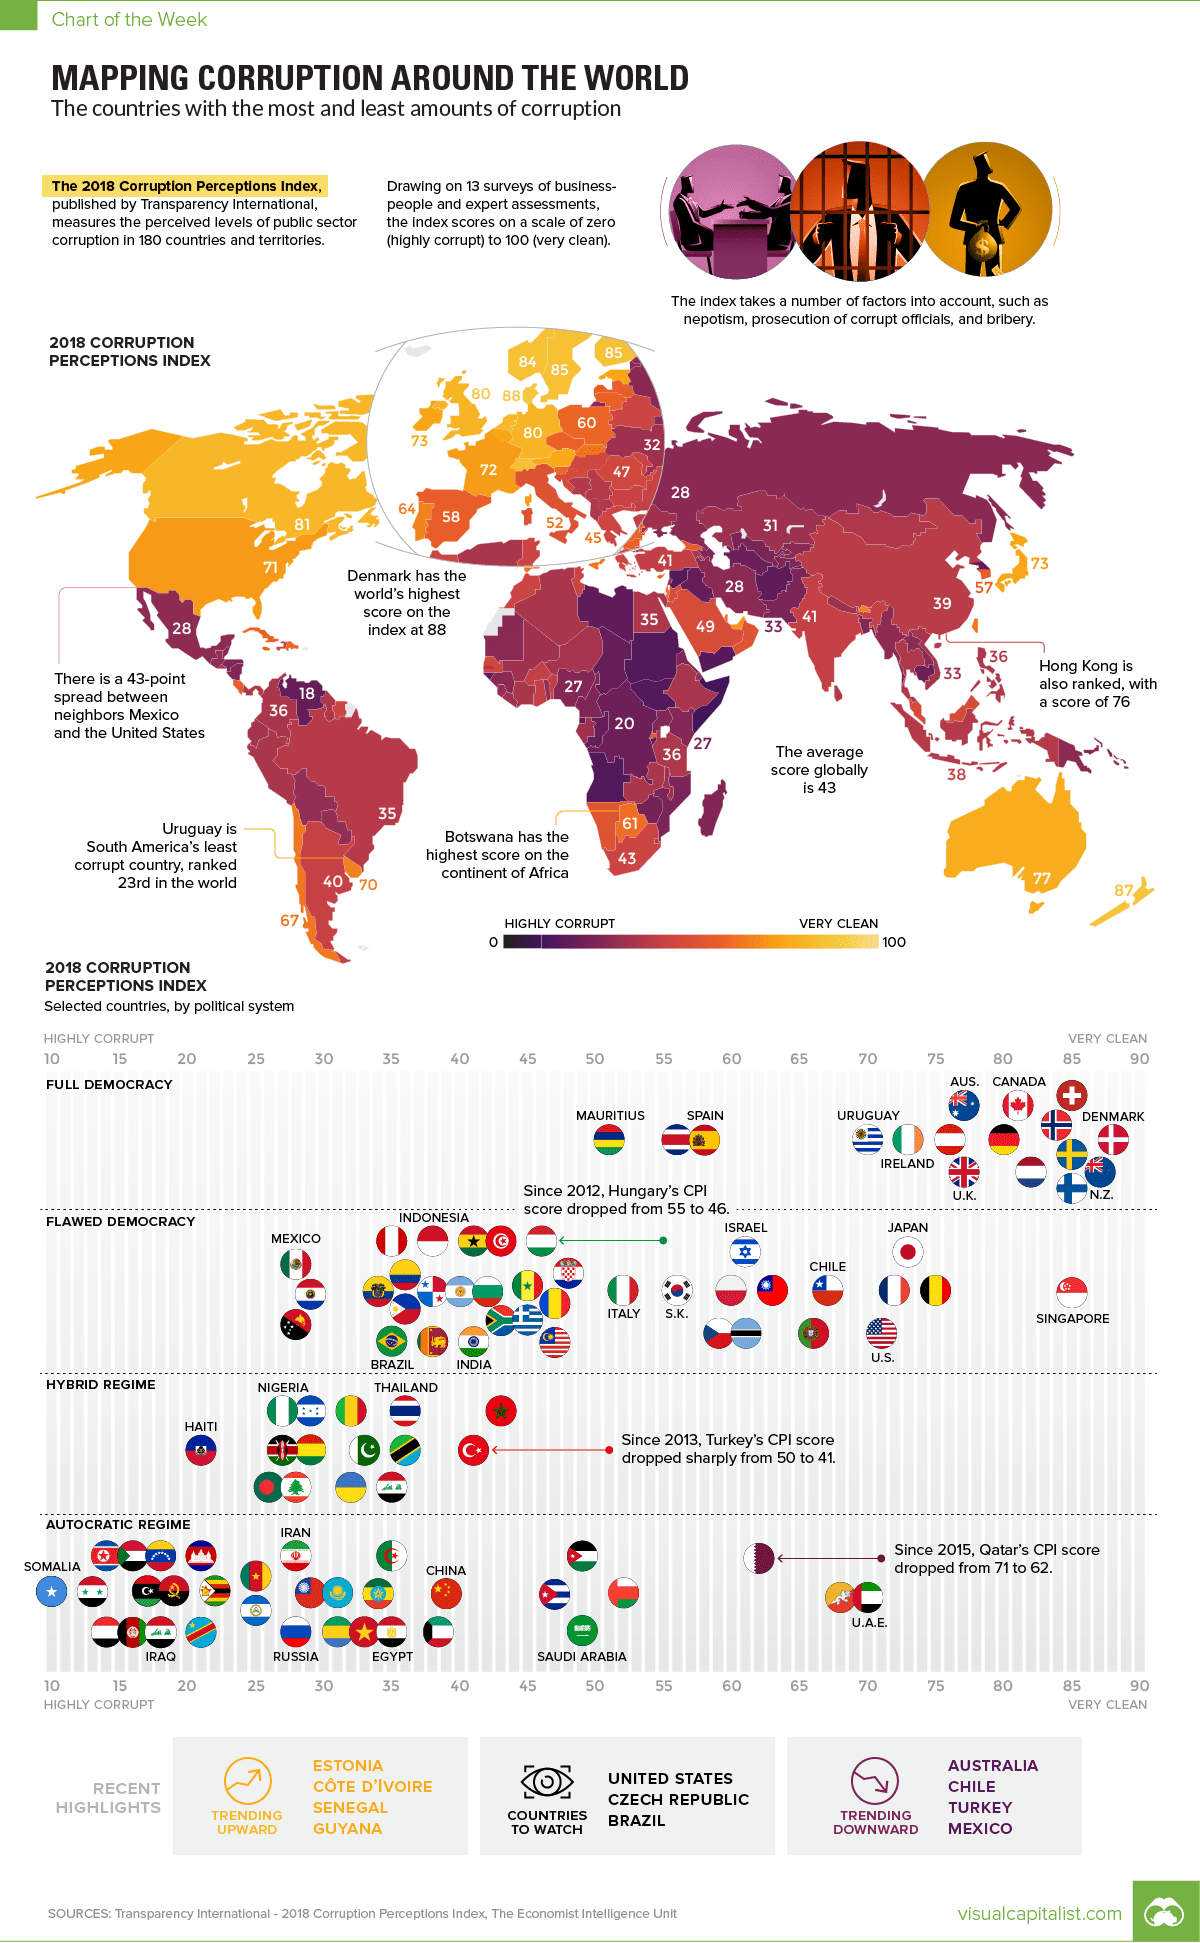 Visualizing Corruption Around the World